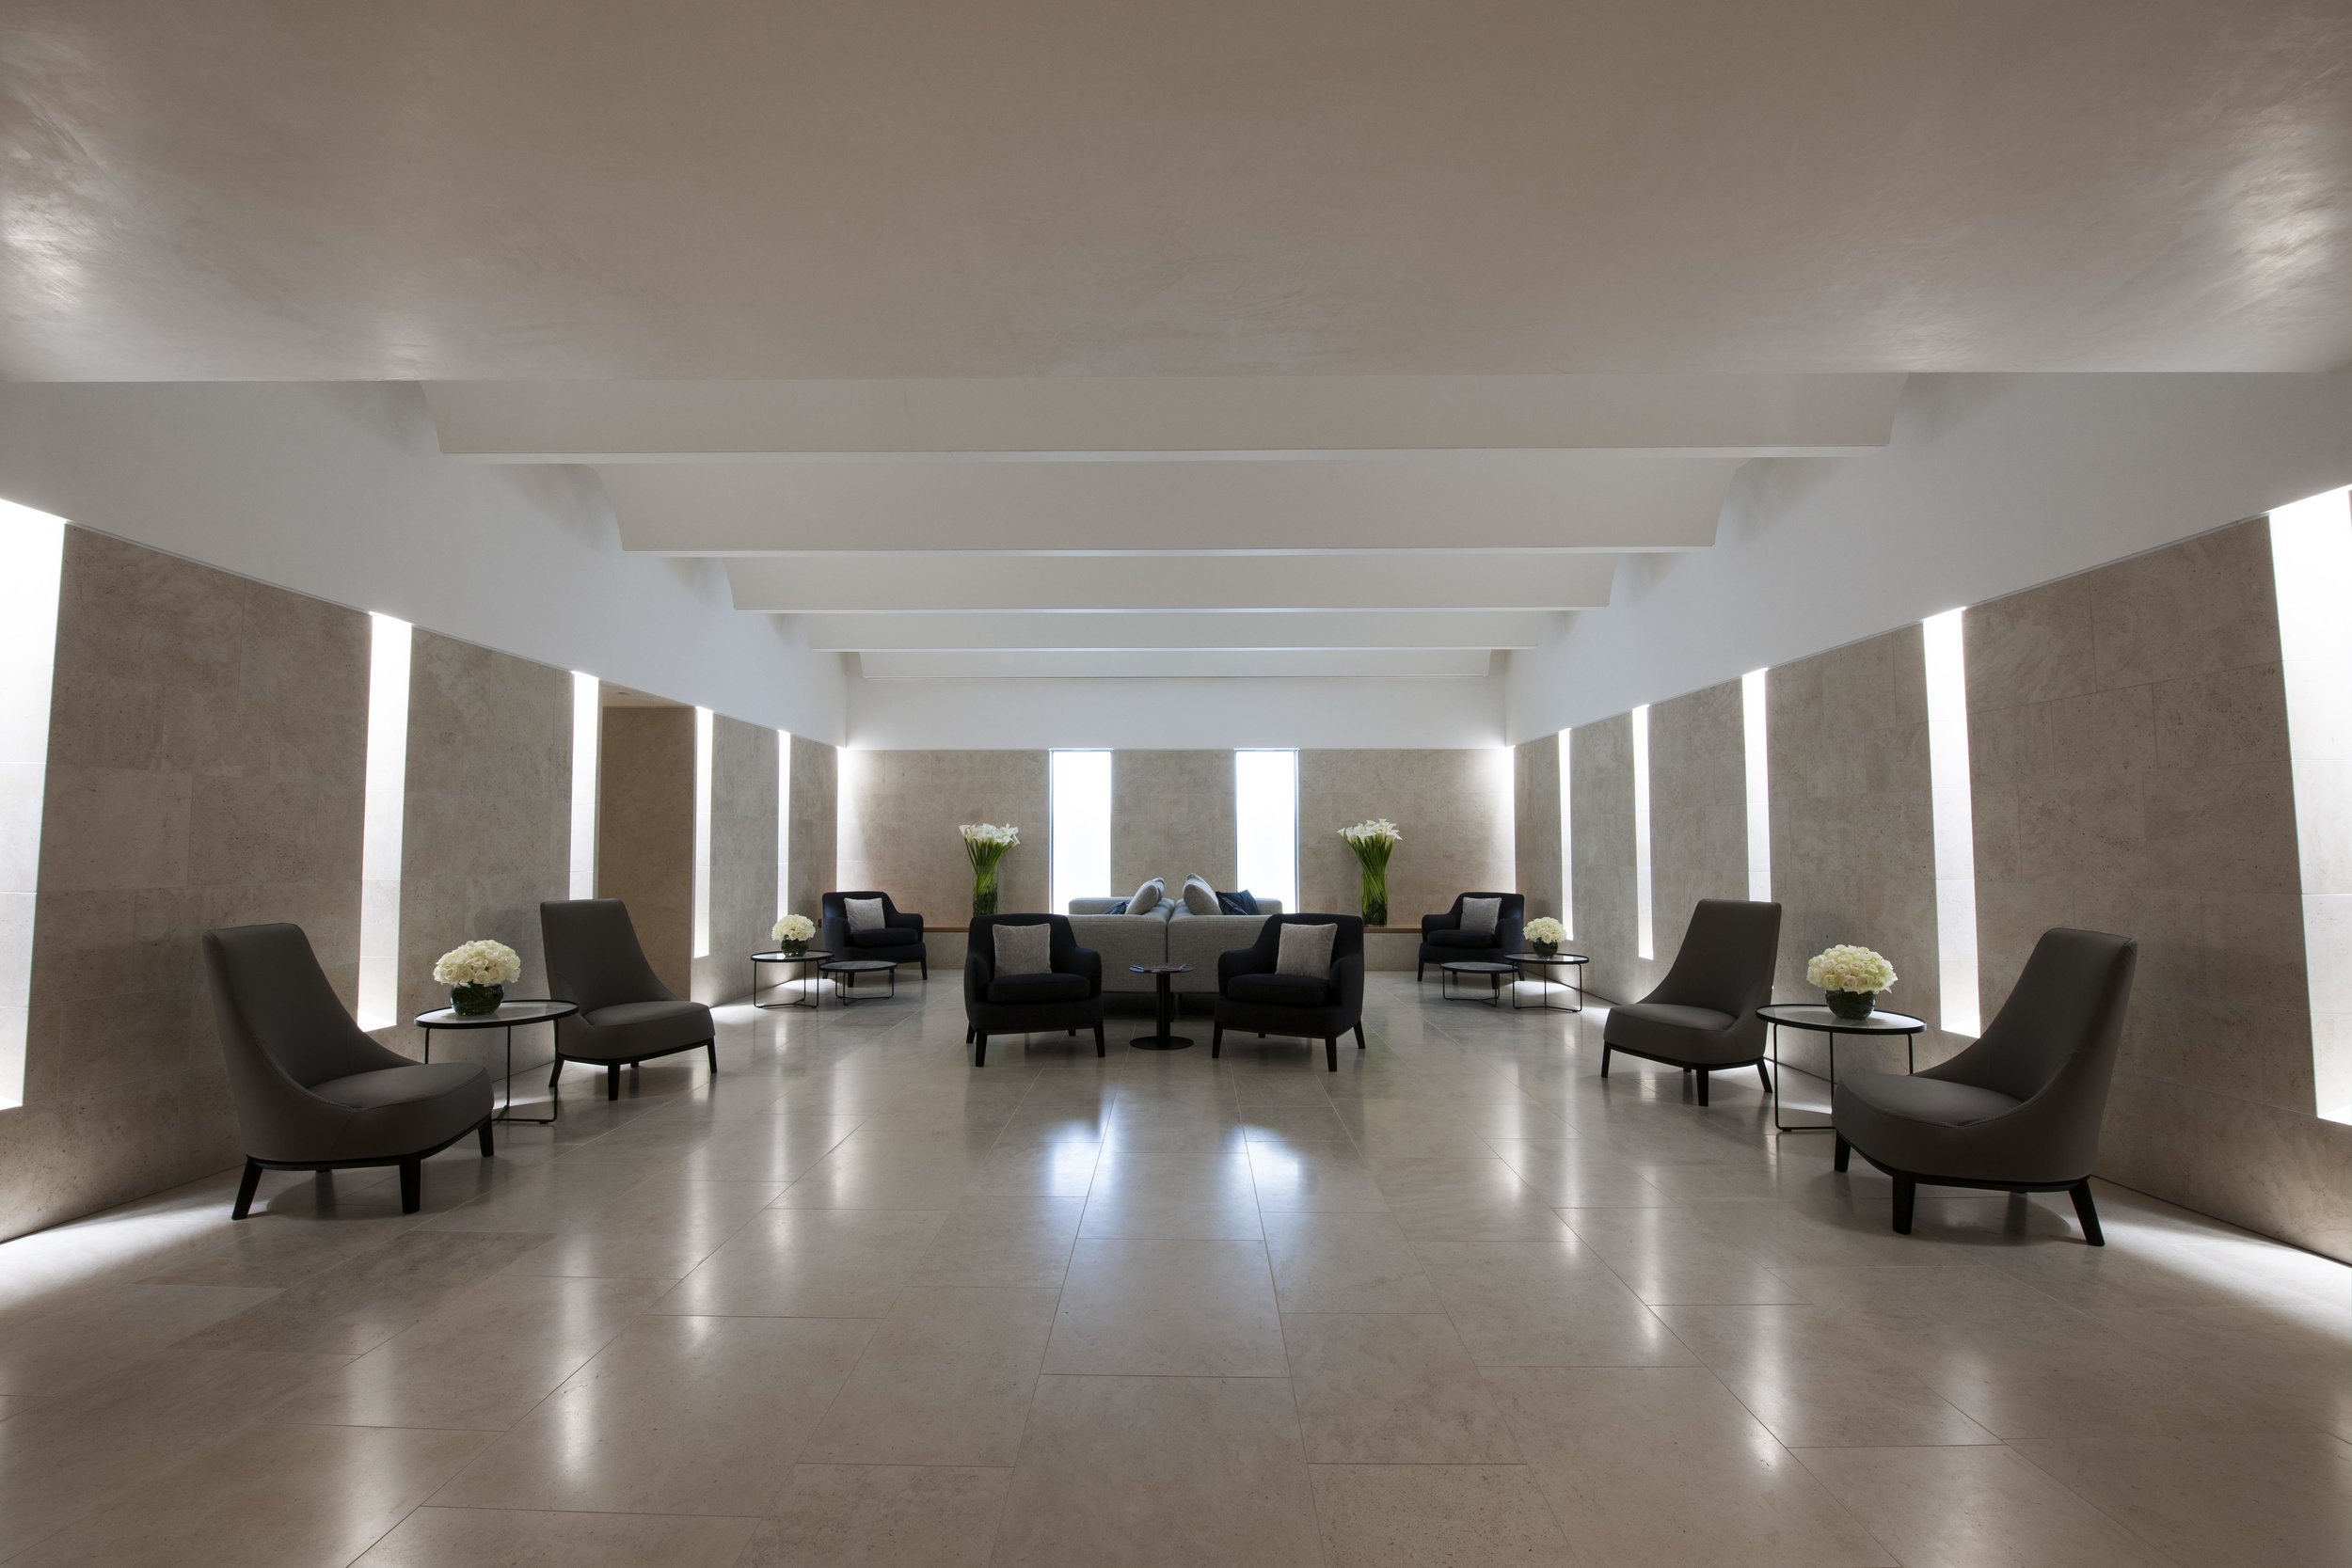 Harrods Interiors worked on a contemporary furniture scheme for the relaxation area and waiting area.